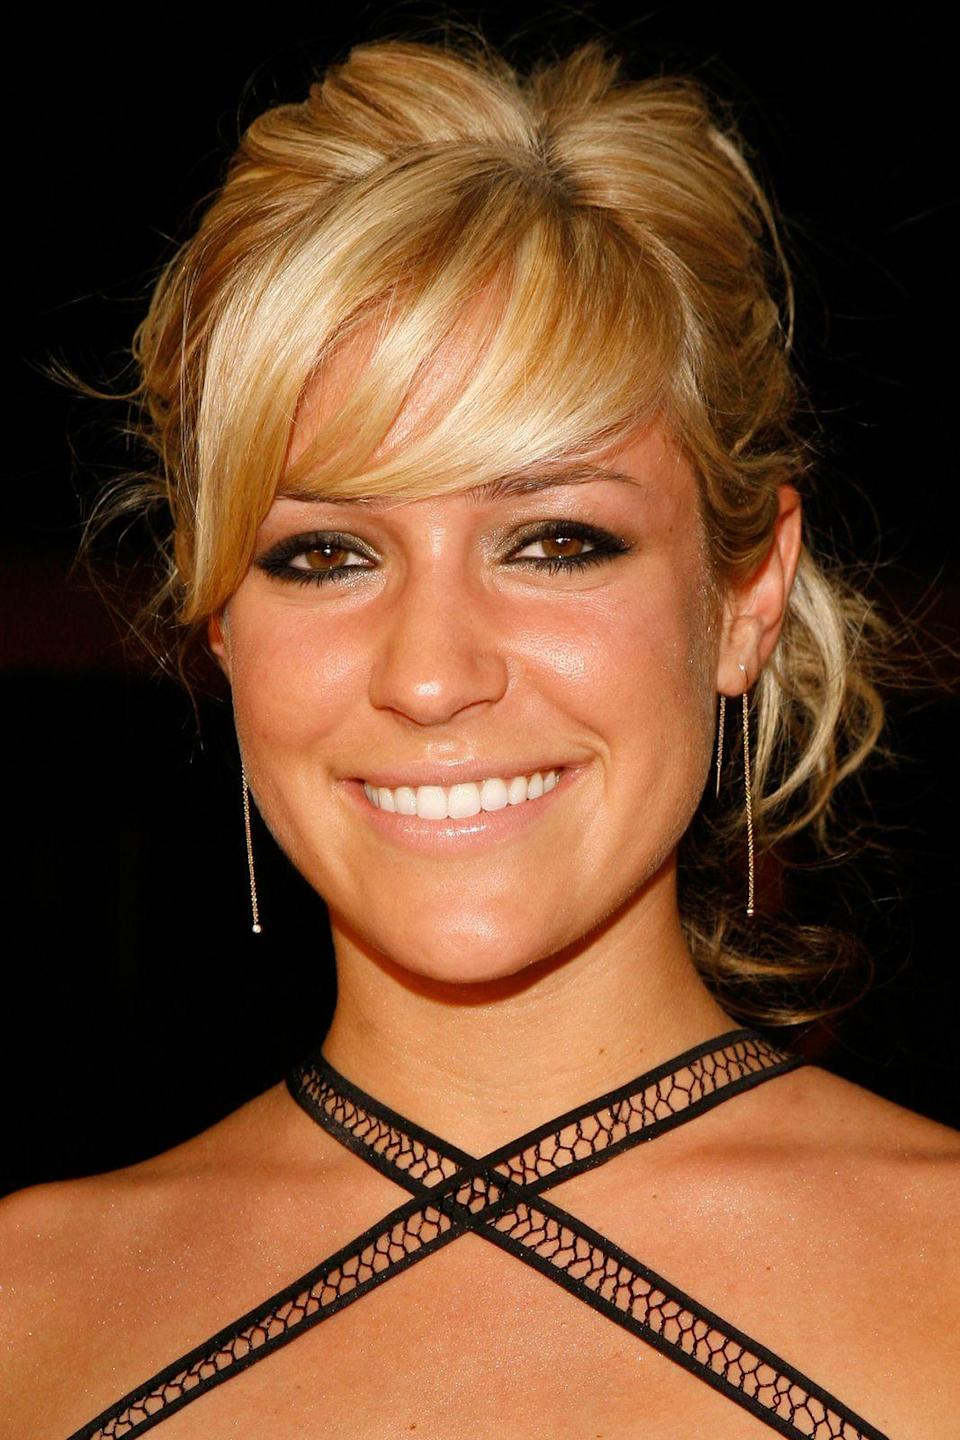 """<p><strong>MTV Australia Video Music Awards, 2007</strong></p><p>""""This is aggressive,"""" Cavallari says, bursting out laughing. """"My hair is yellow! There's a lot of liner going on and my hair is <em>yellow</em>. I like the top. But wow, that makeup.""""</p><span class=""""copyright"""">Photo: Chris Polk/FilmMagic.</span>"""